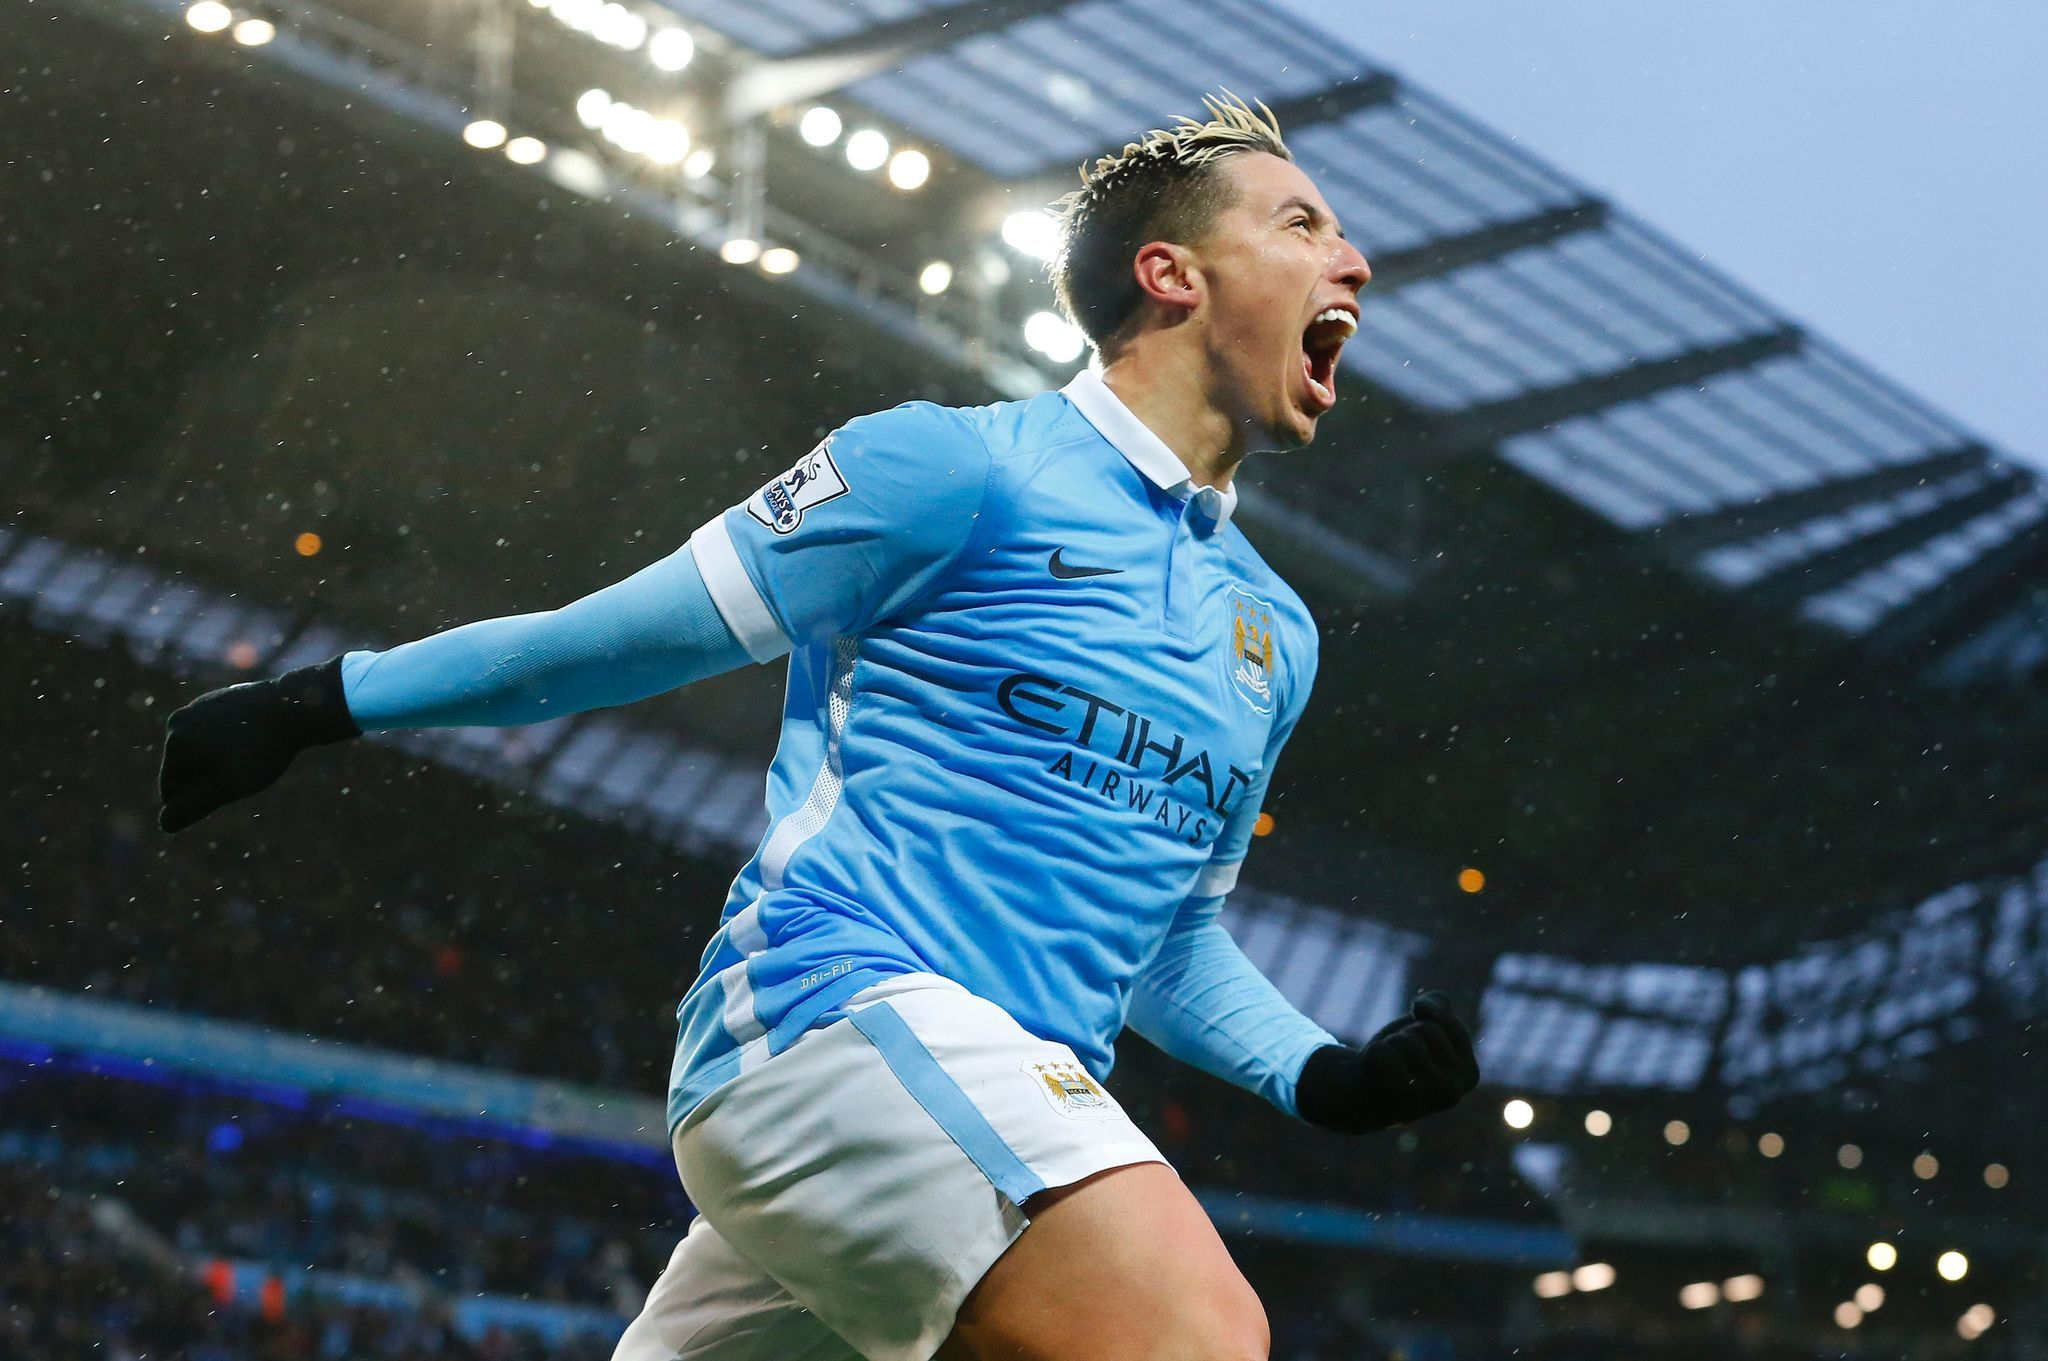 Samir Nasri leaves Man City for Turkish club Antalyaspor Chicago